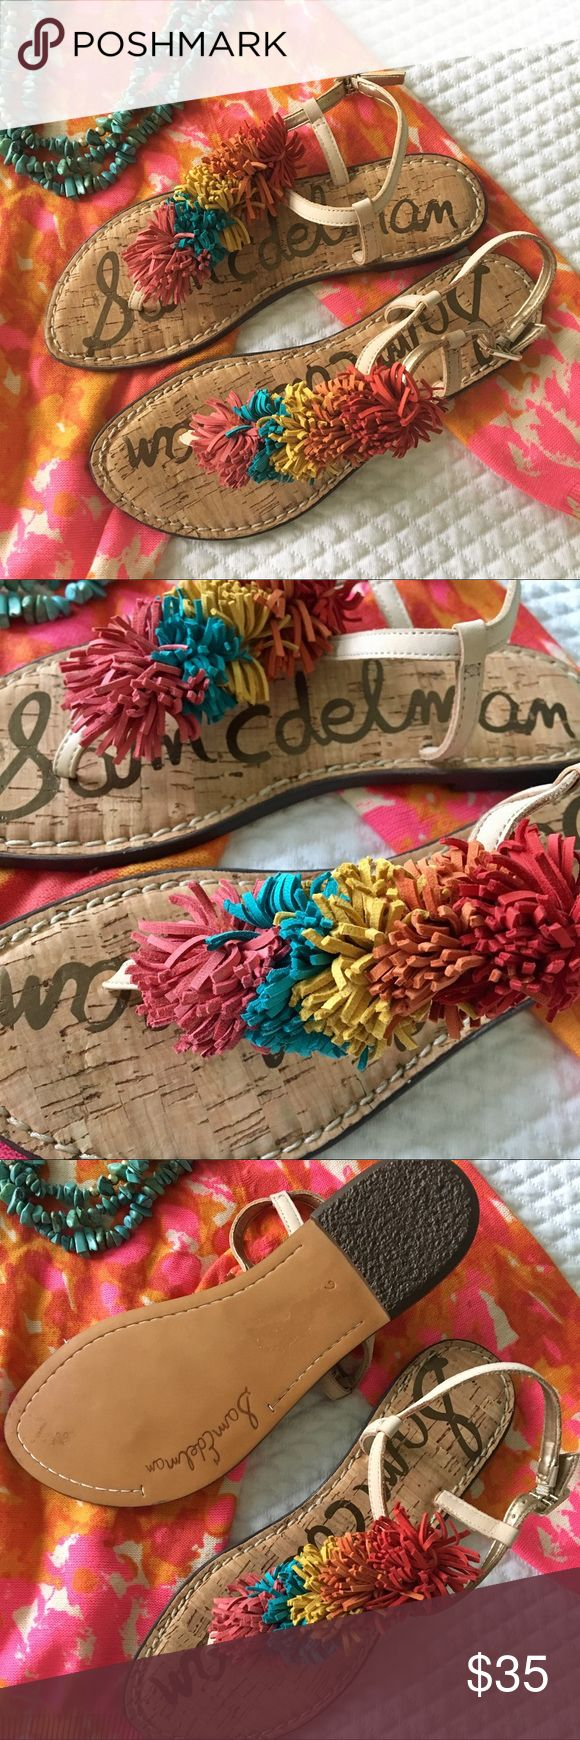 NWOTB Sam Edelman Sandals Adorable and colorful Pom Pom sandals from Sam Edelman. Go with everything.  Brand new but without box/tags.  Size 6. Full price is $90.  [Sweater also for sale] Sam Edelman Shoes Sandals